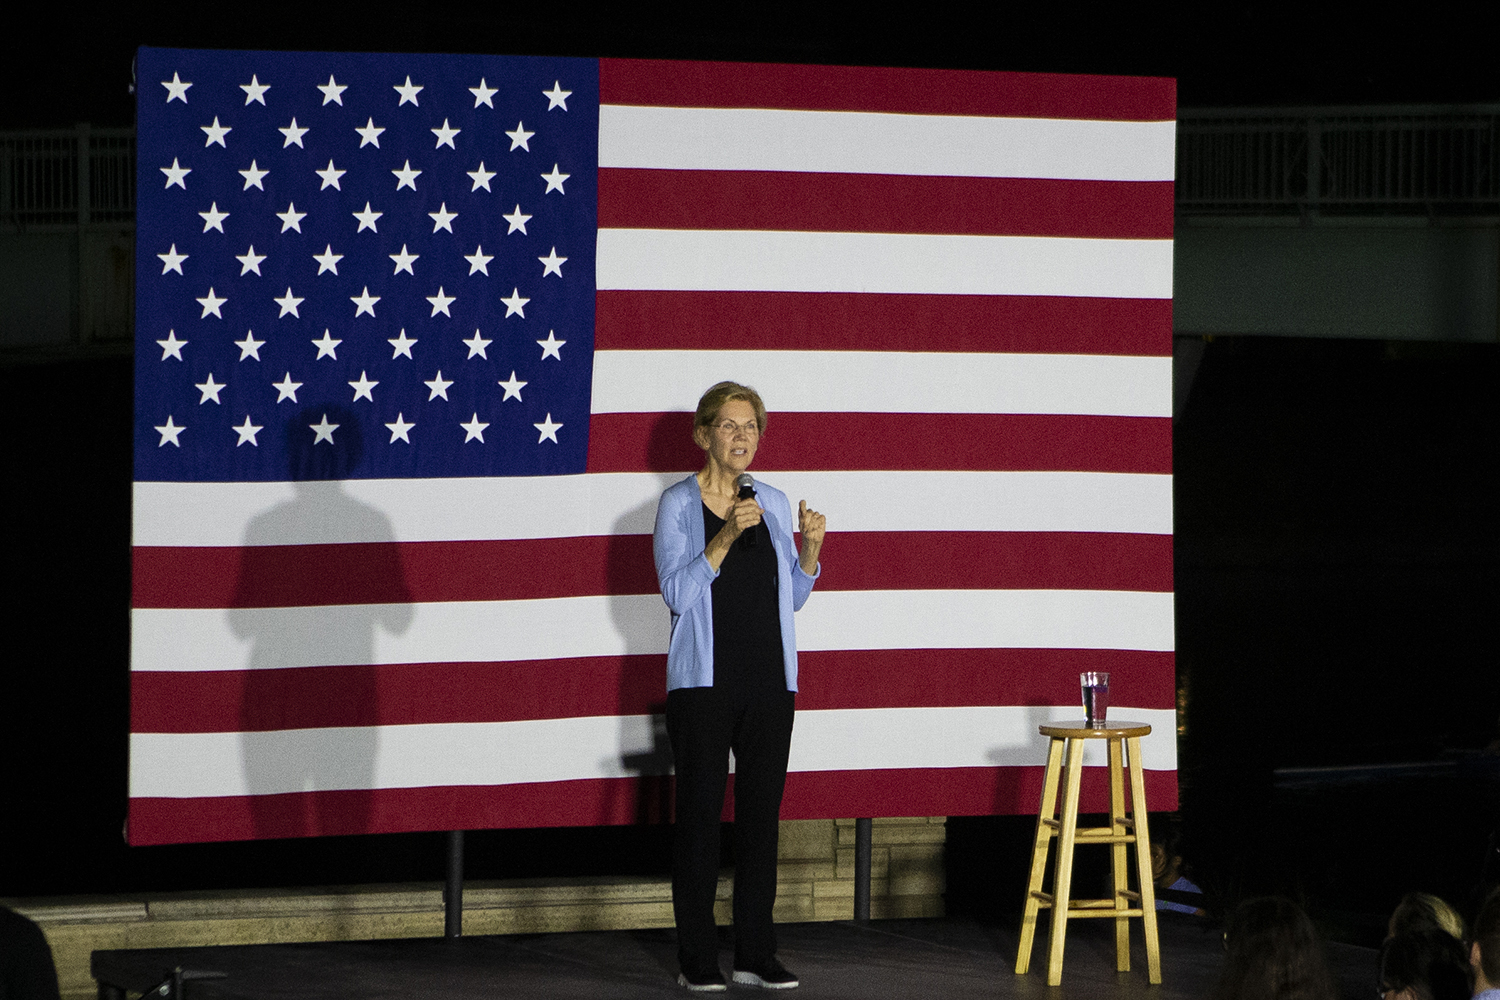 Elizabeth Warren speaks during a campaign rally for presidential candidate and Senator Elizabeth Warren, D-Mass. outside the IMU on Thursday, September 19, 2019. (Raquele Decker/The Daily Iowan)